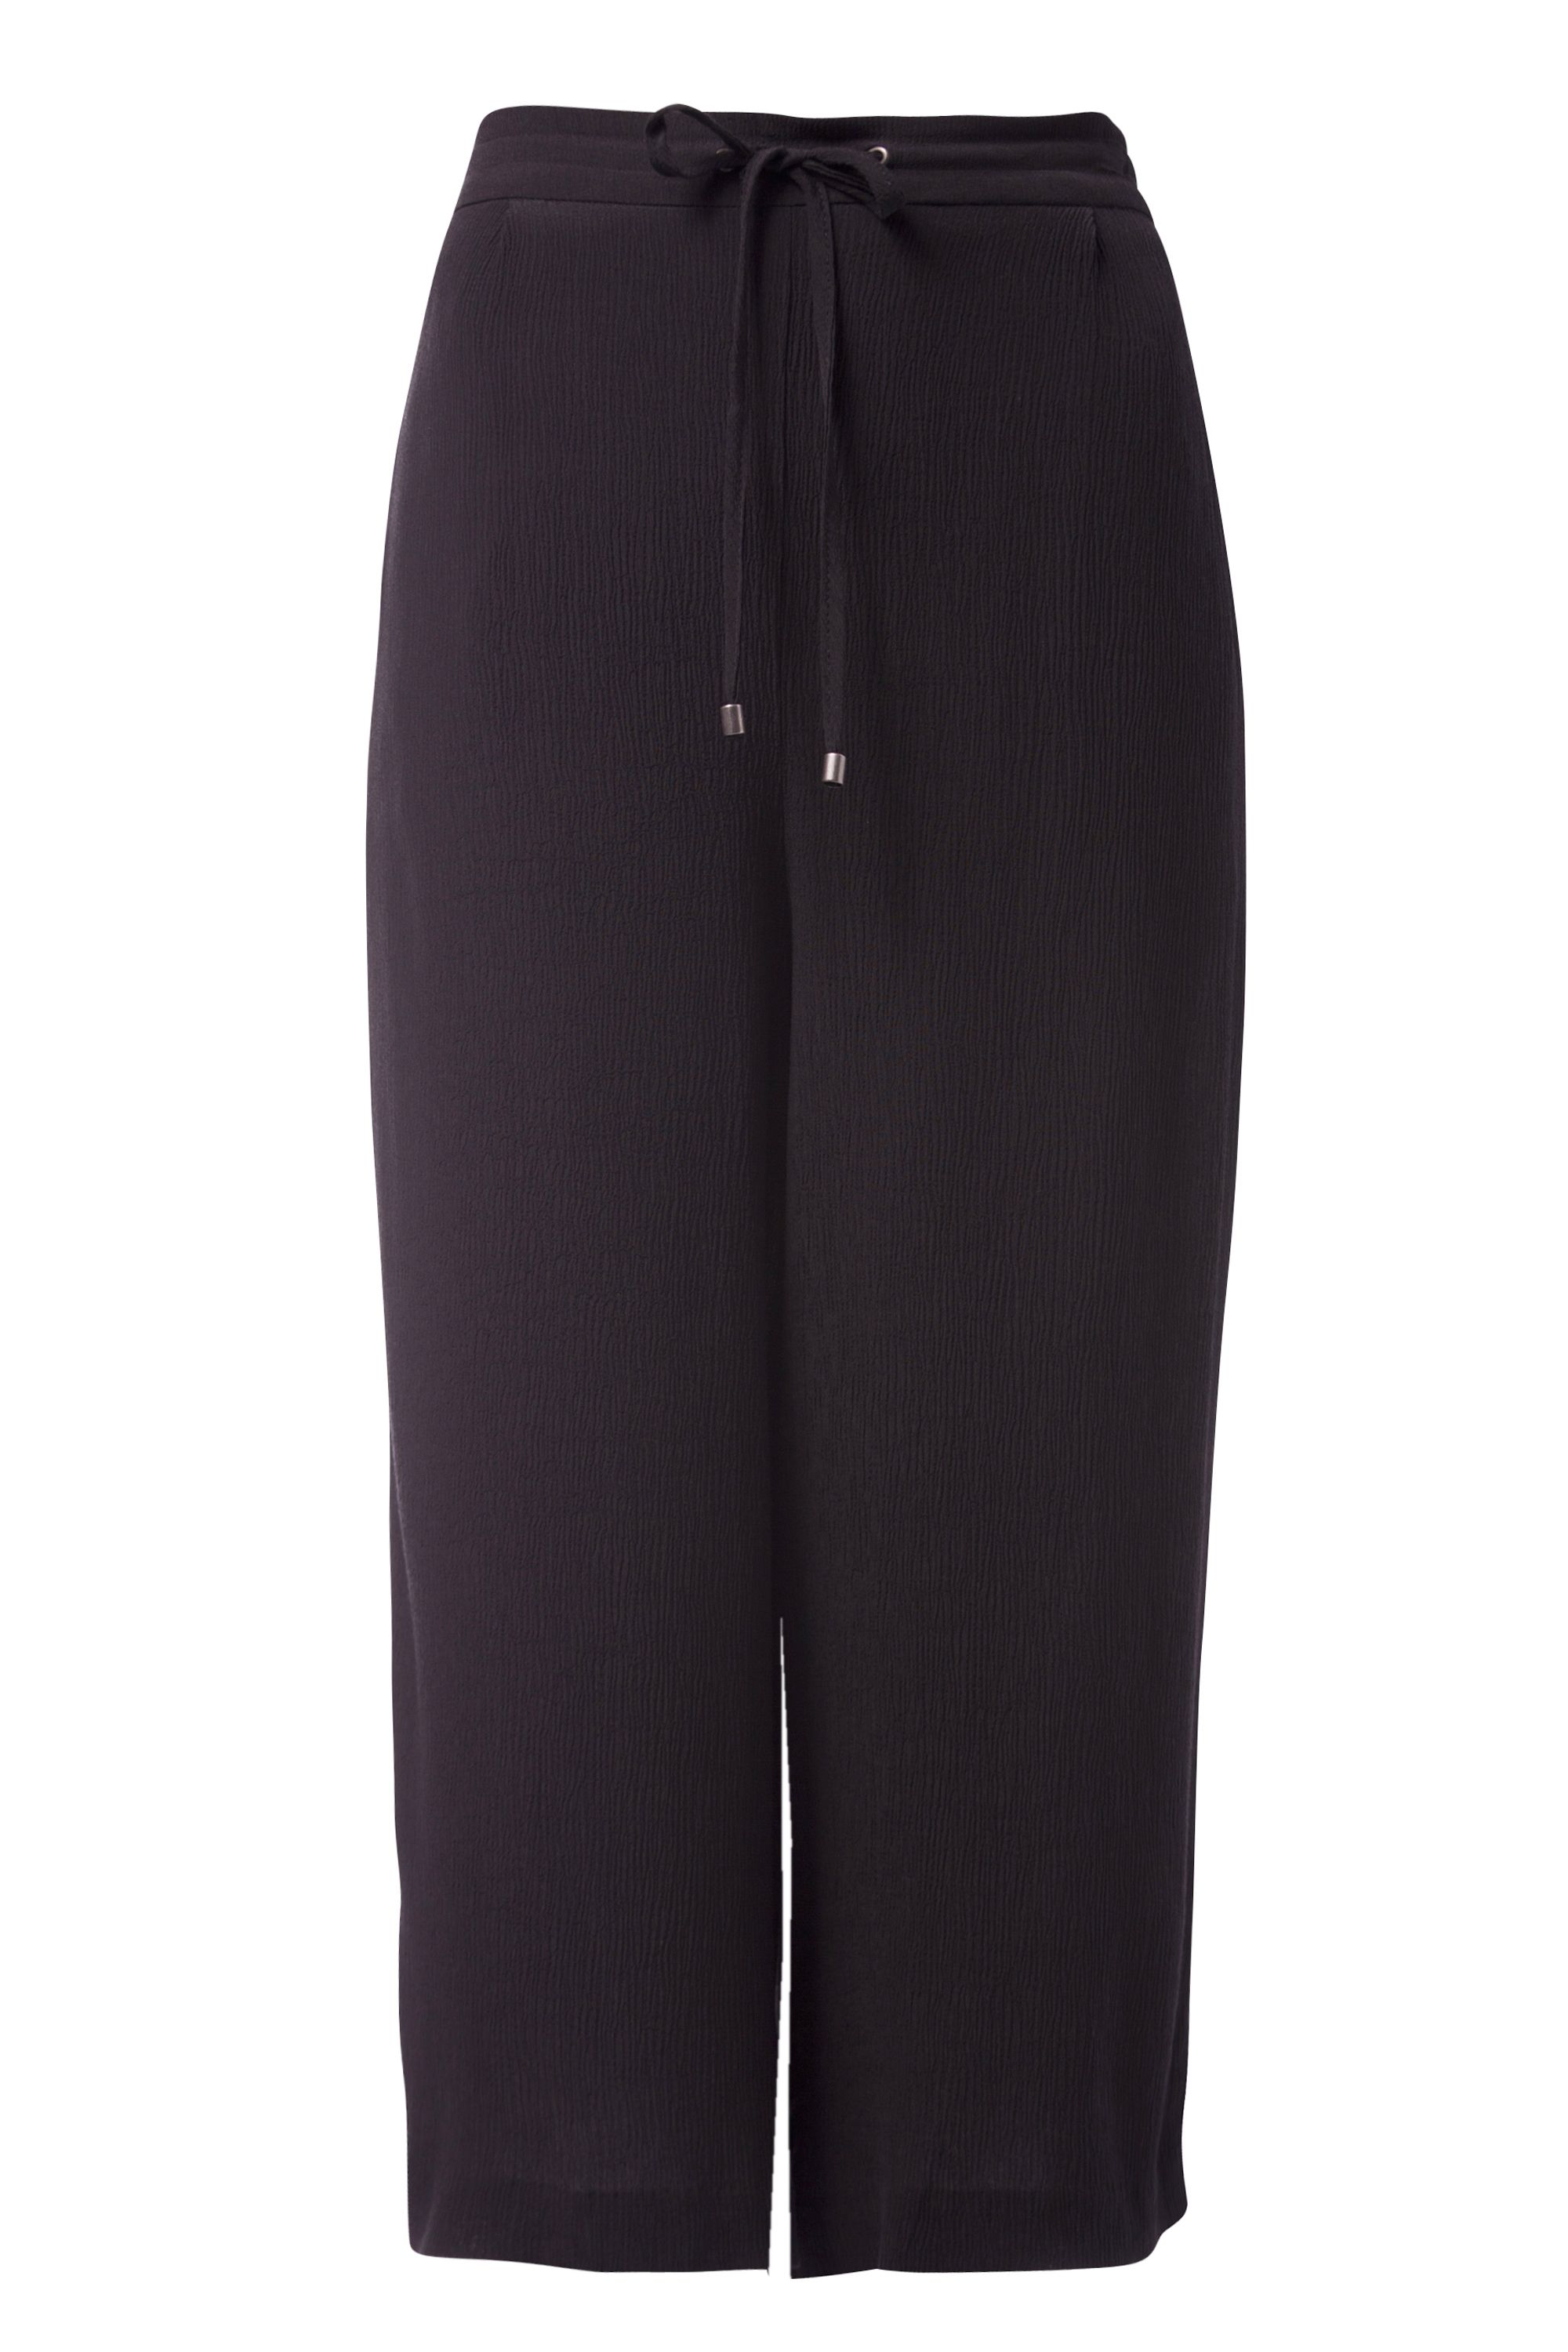 Tommy Hilfiger Loose Fit Culottes, Black